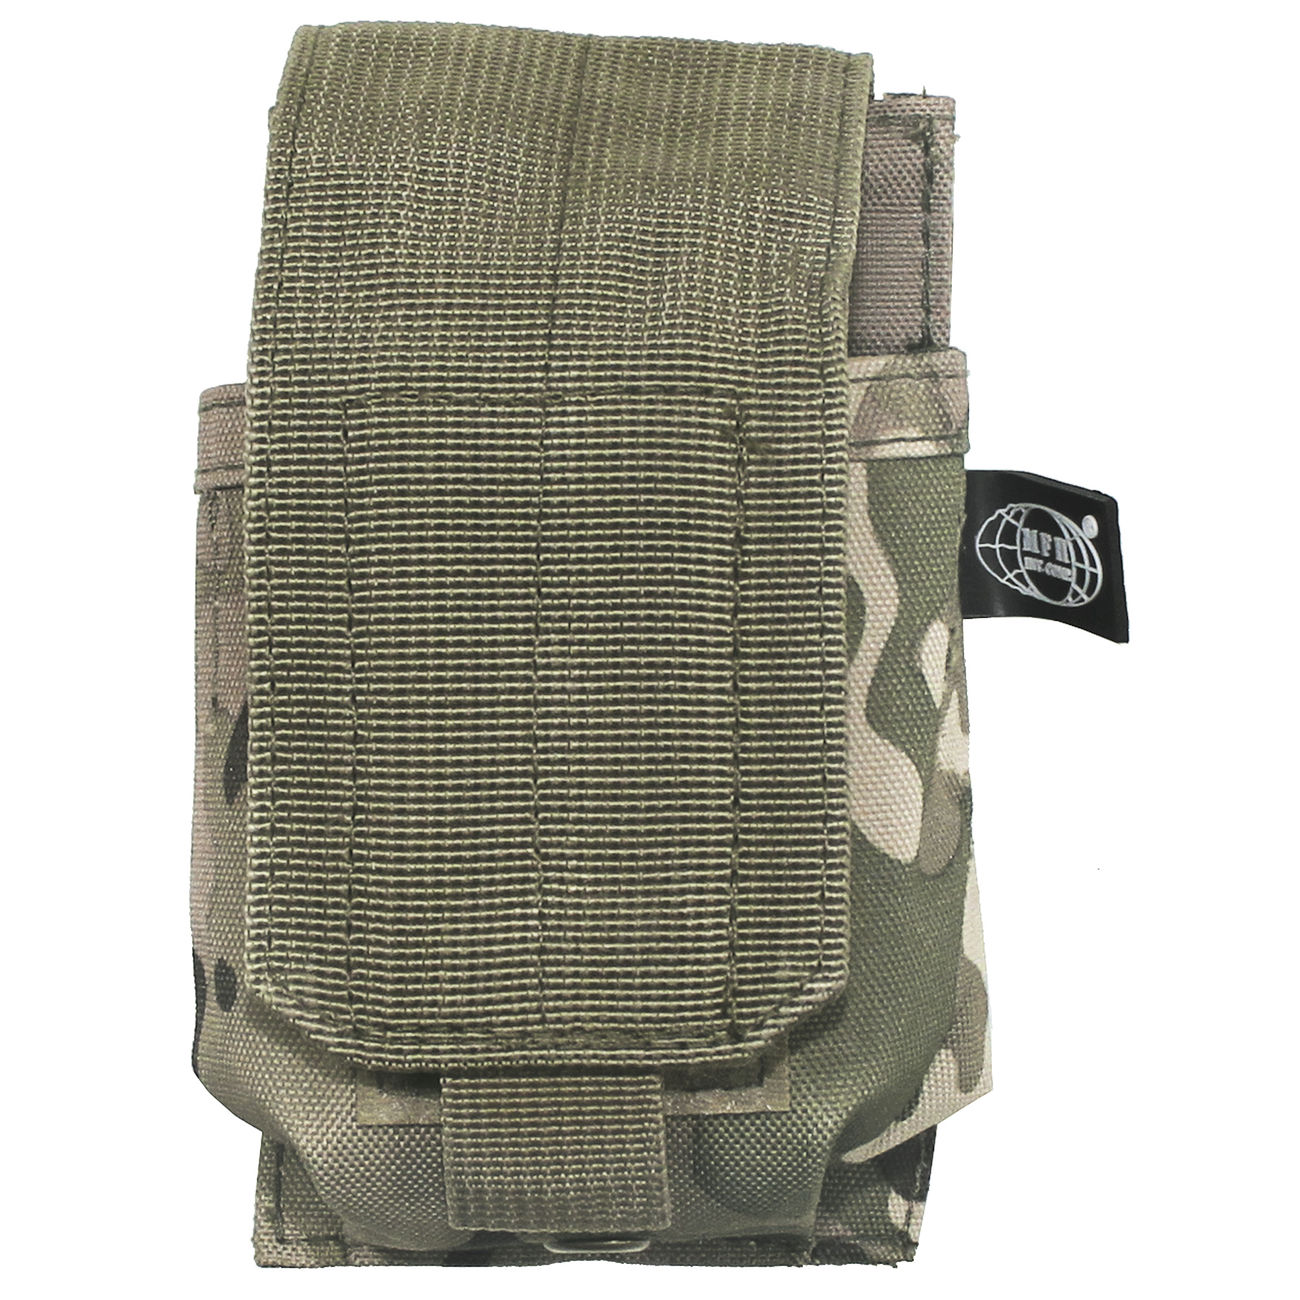 MFH Magazintasche einfach Molle operation camo 0